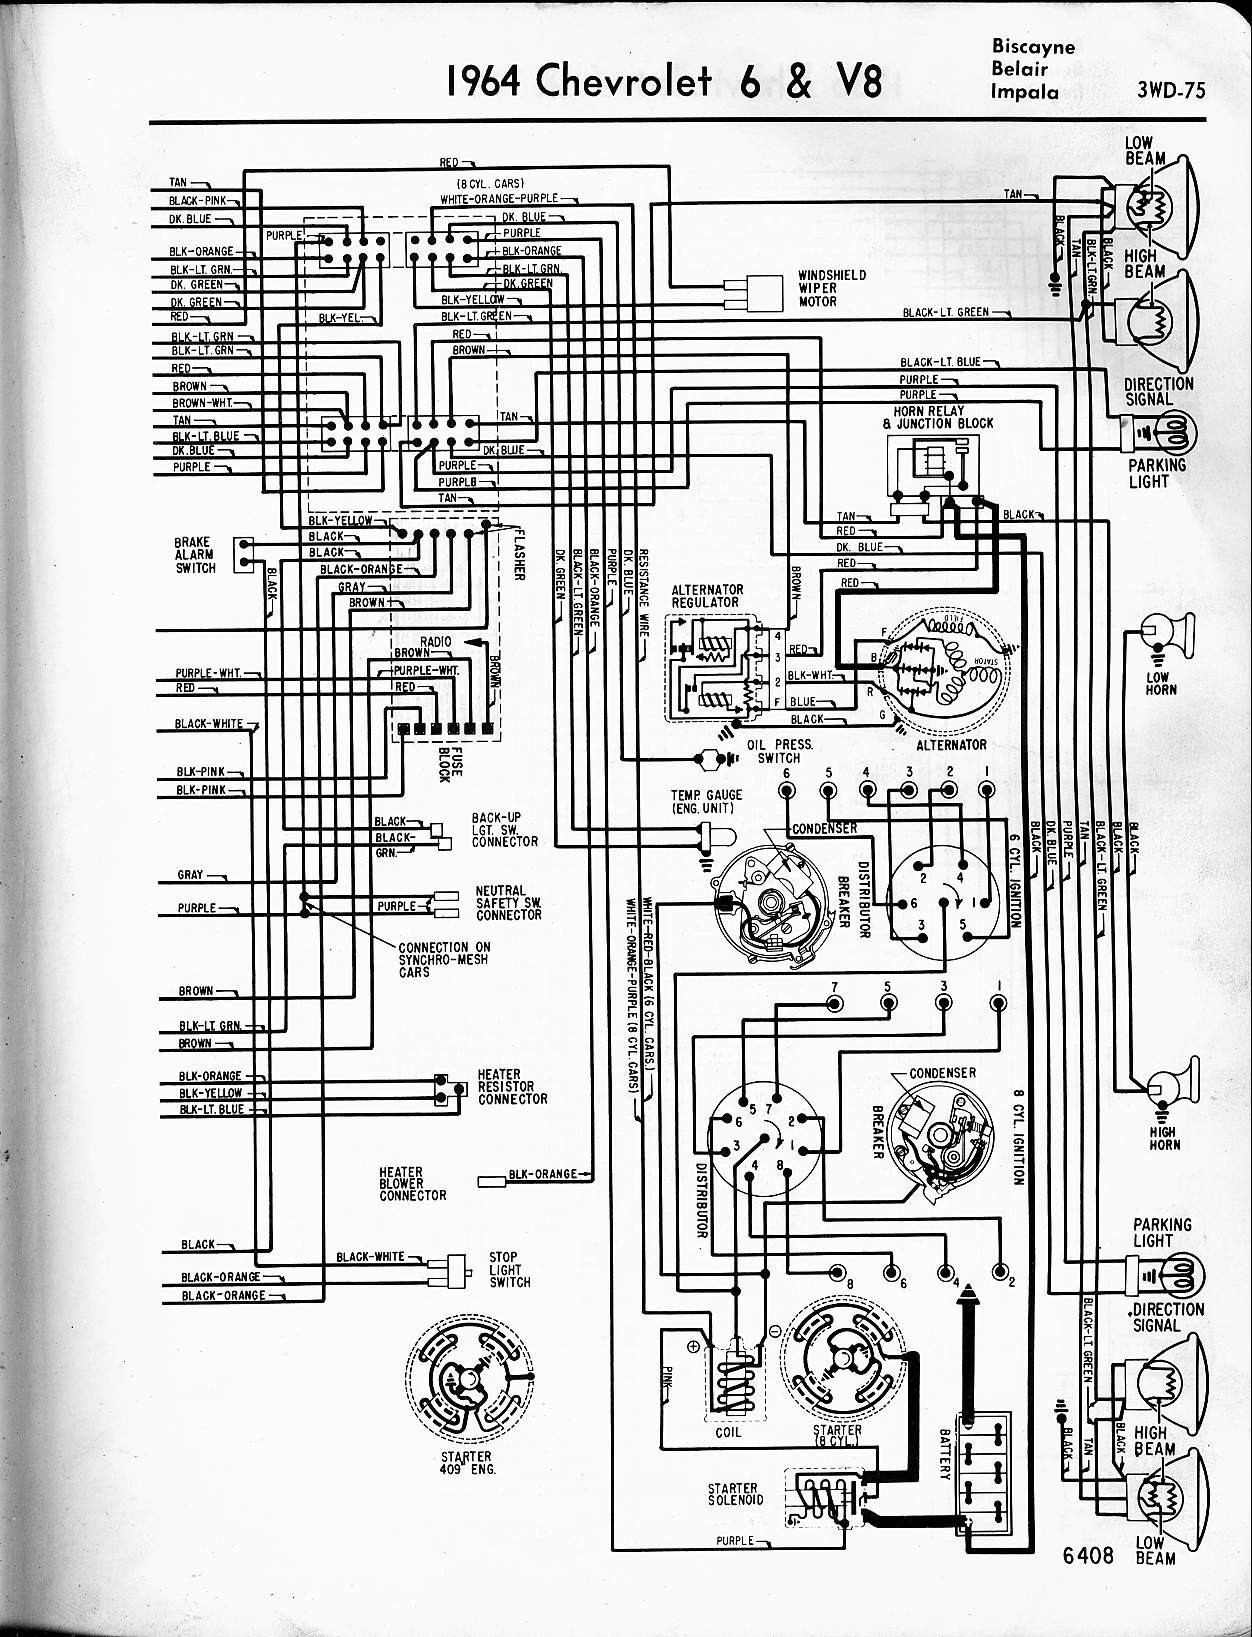 1972 impala wiring diagram 1972 nova wiring diagram in color schematic